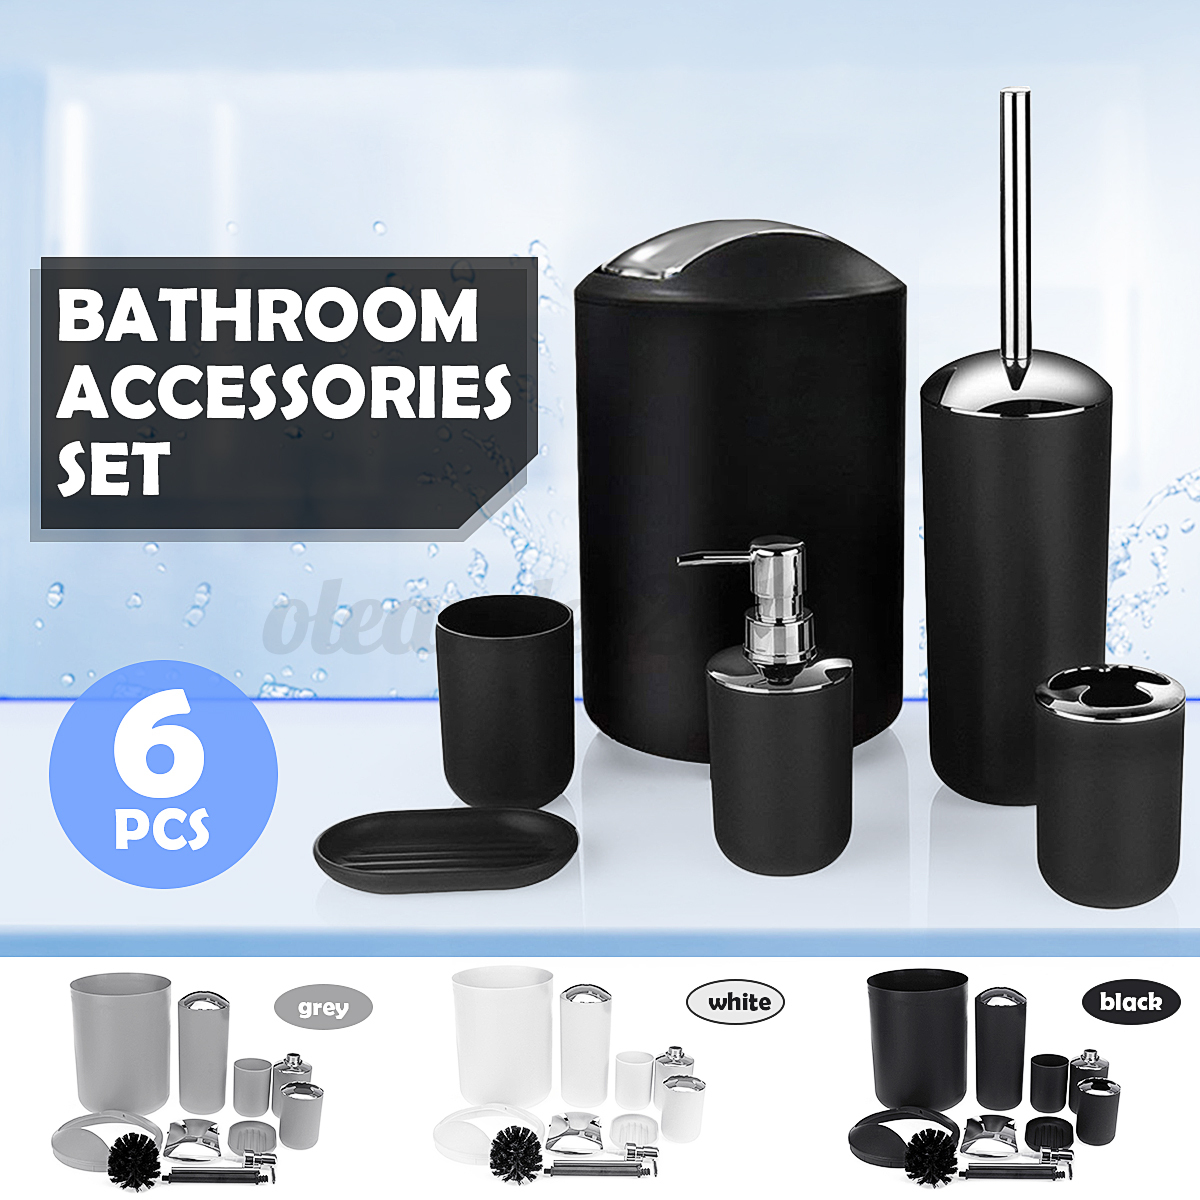 6Pcs Bathroom Accessories Set Toothbrush Holder Soap Dispens